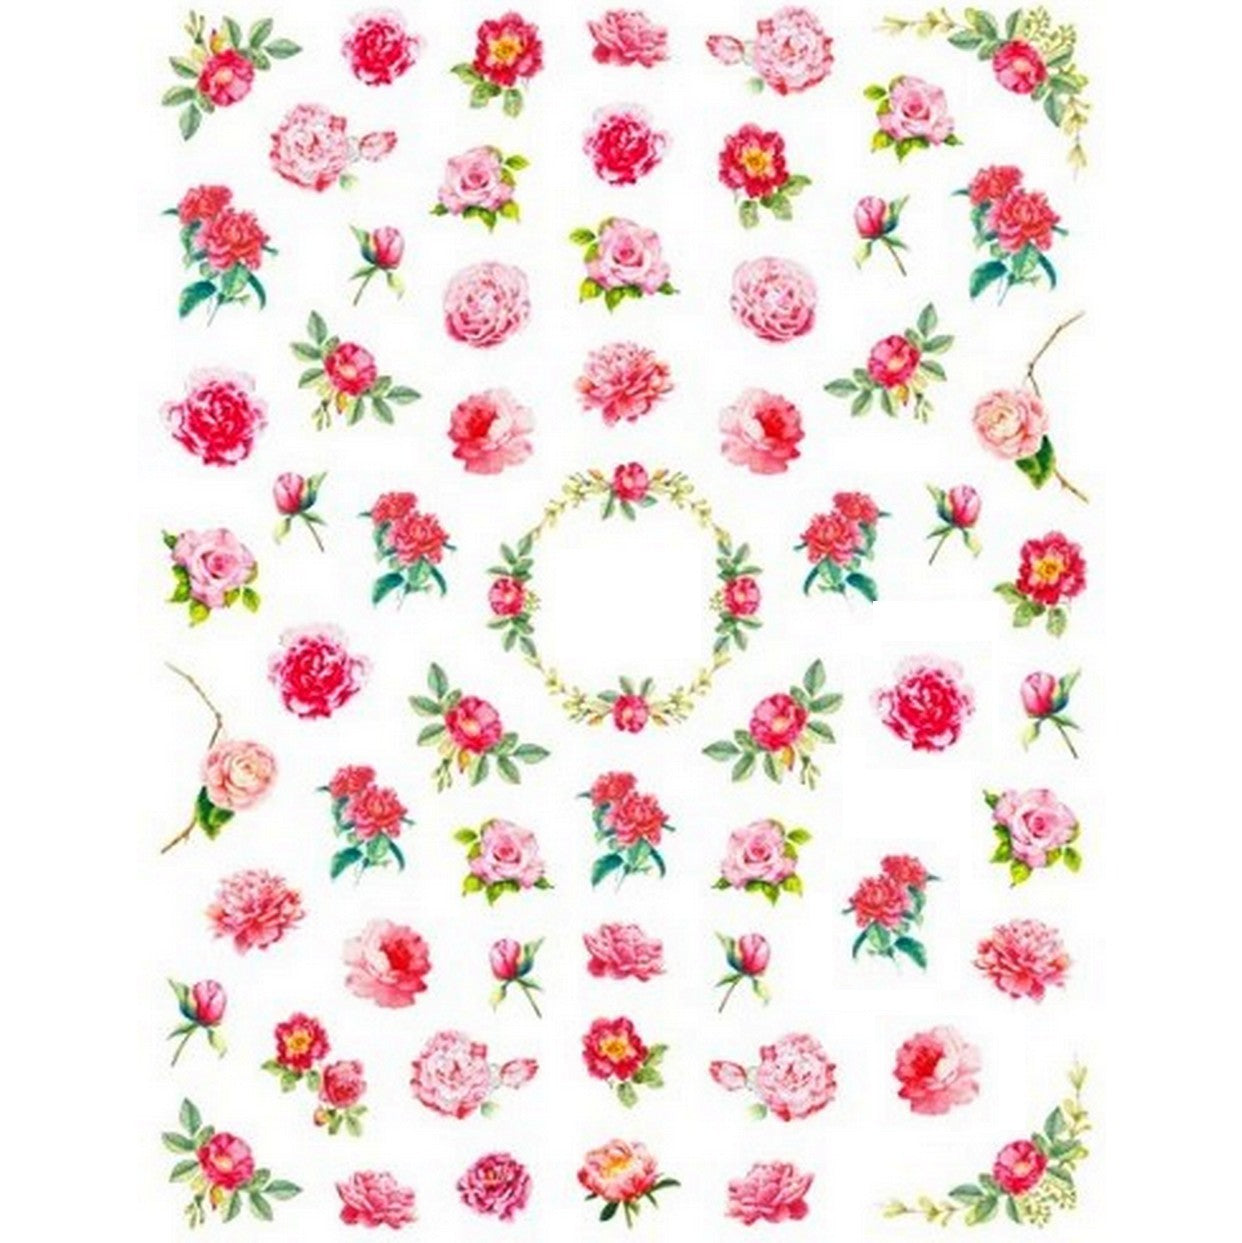 Floral Vintage 50's Roses Nail Stickers